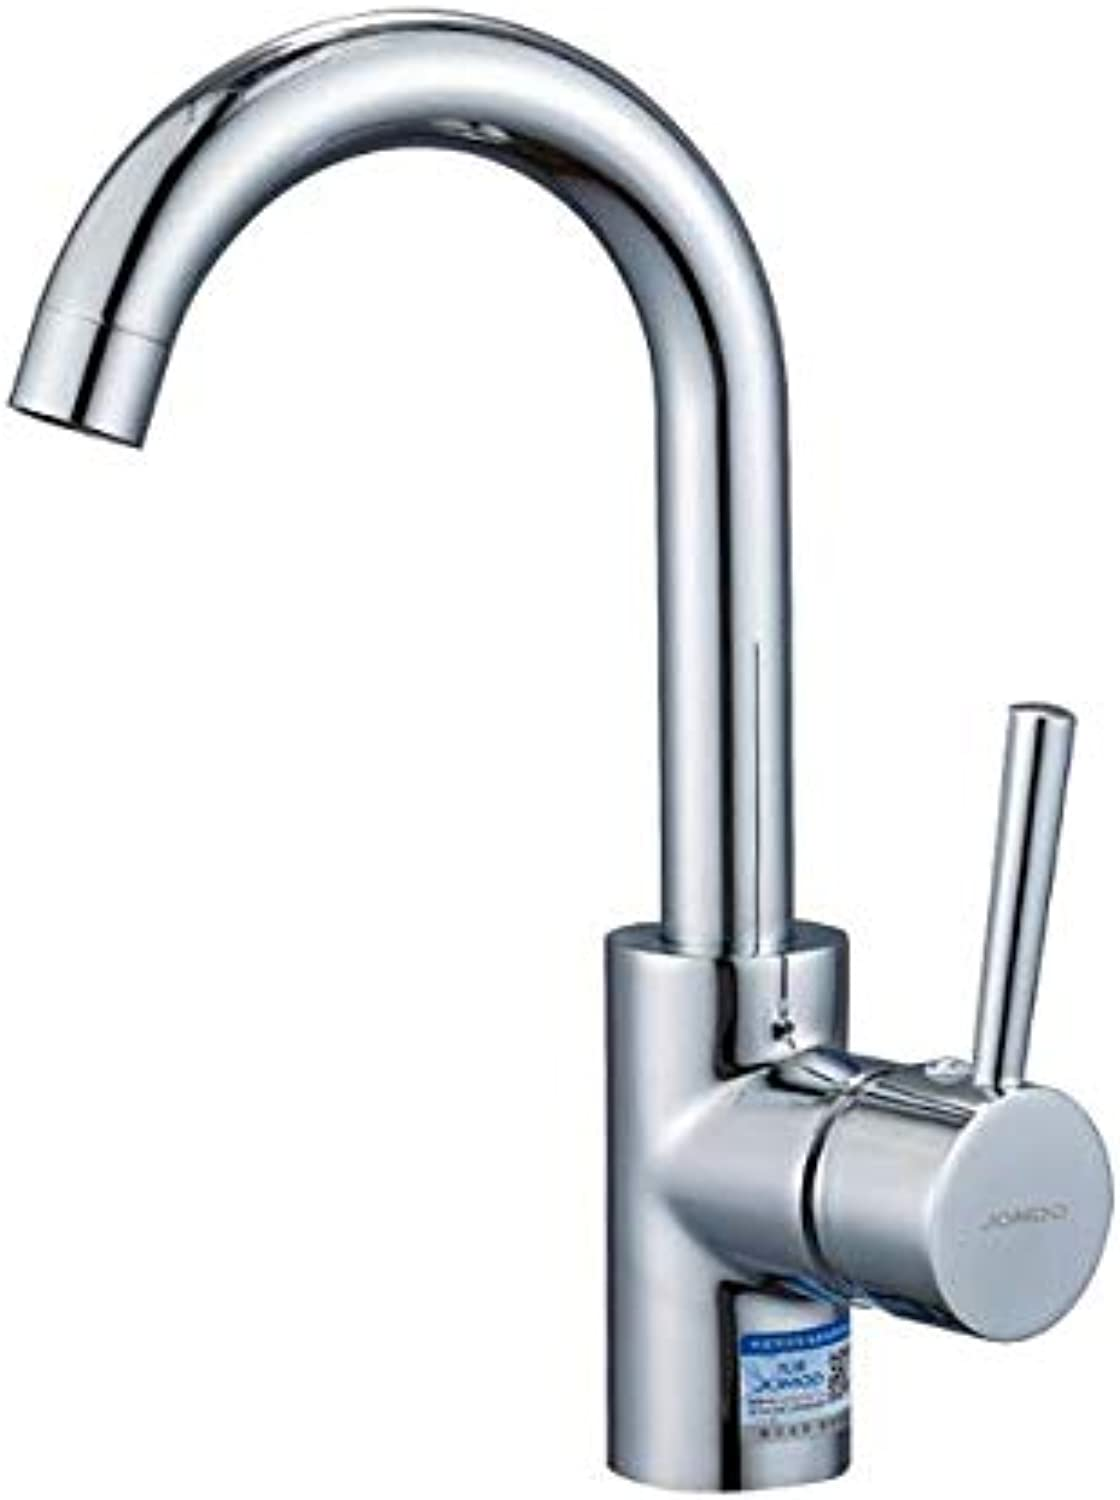 Washbasin Faucet hot and Cold Basin Faucet can be redated wash Basin Basin Copper Faucet